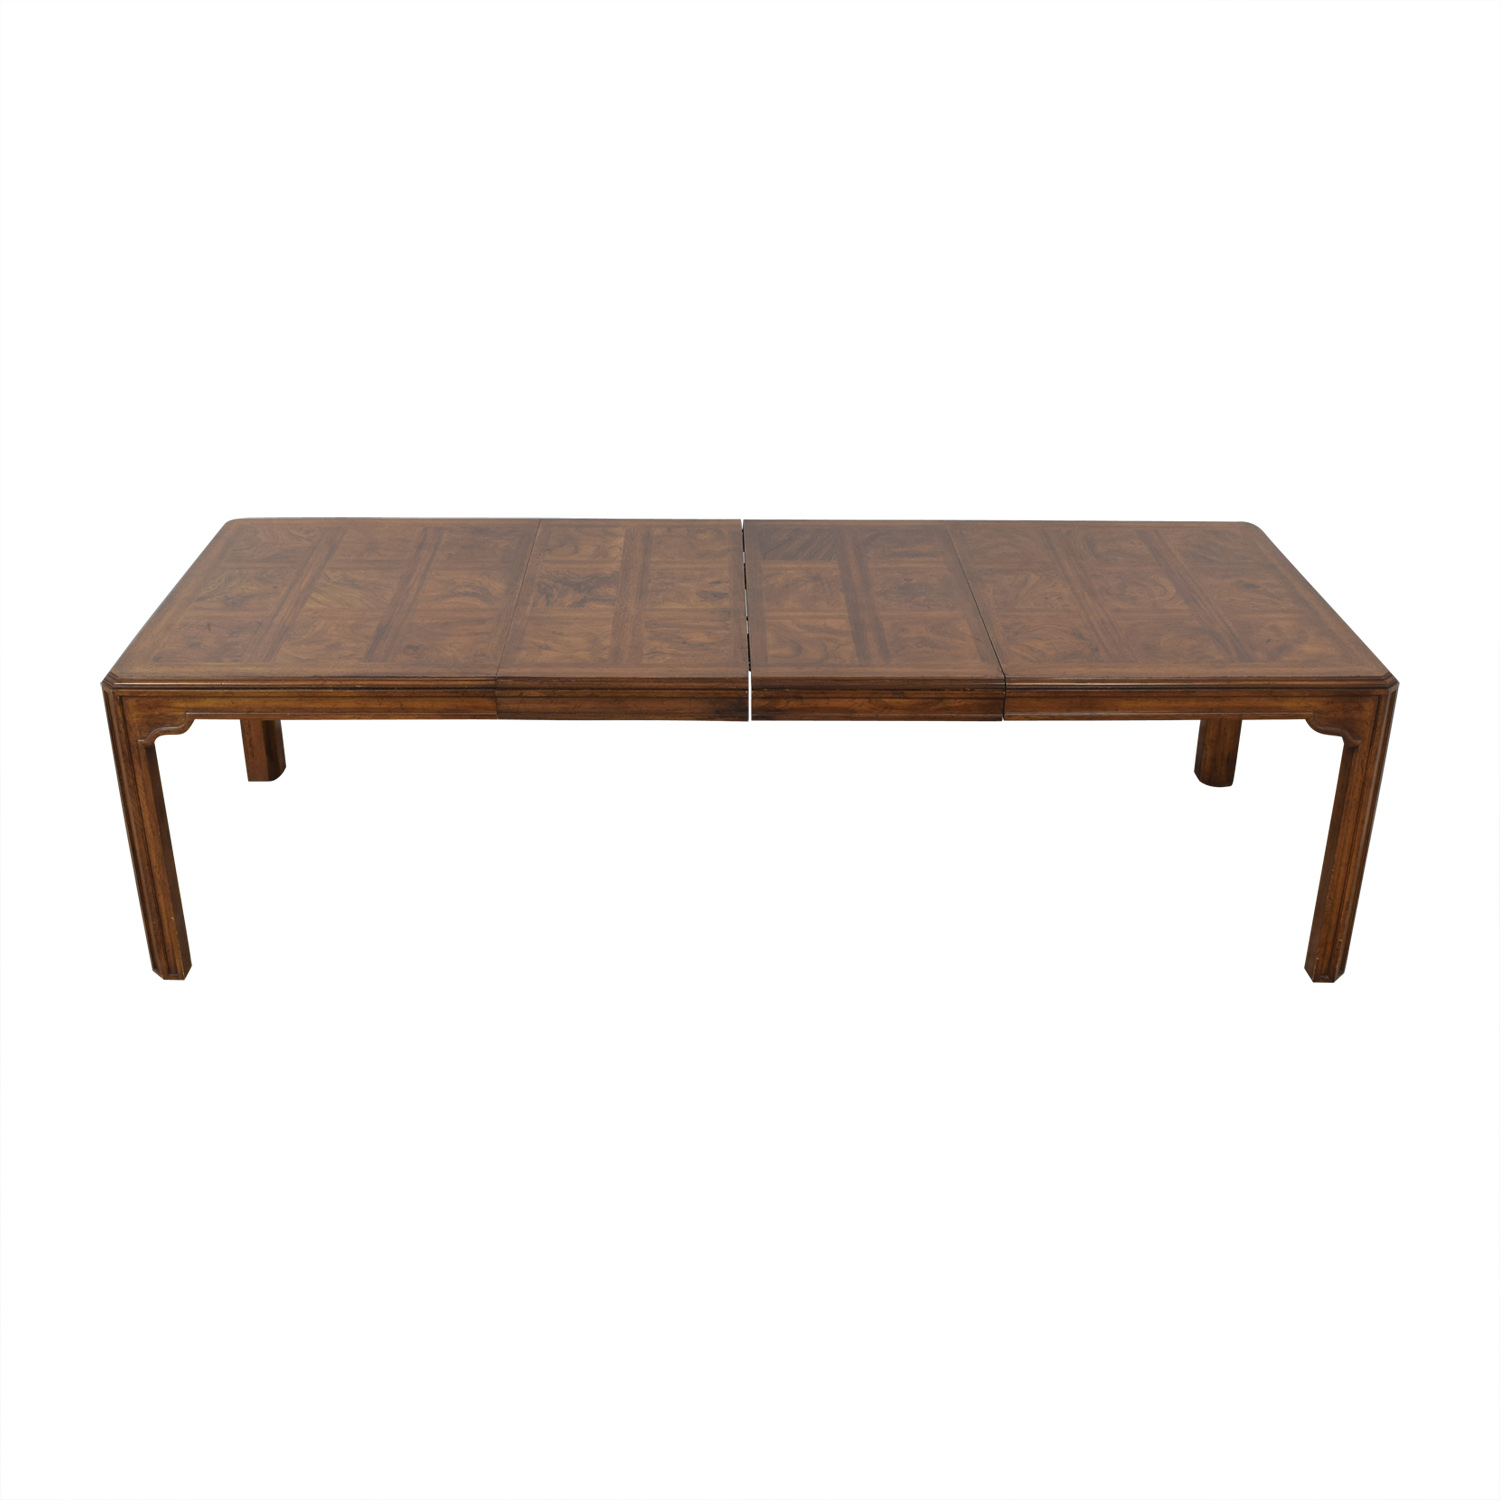 Drexel Heritage Extension Dining Table Drexel Heritage